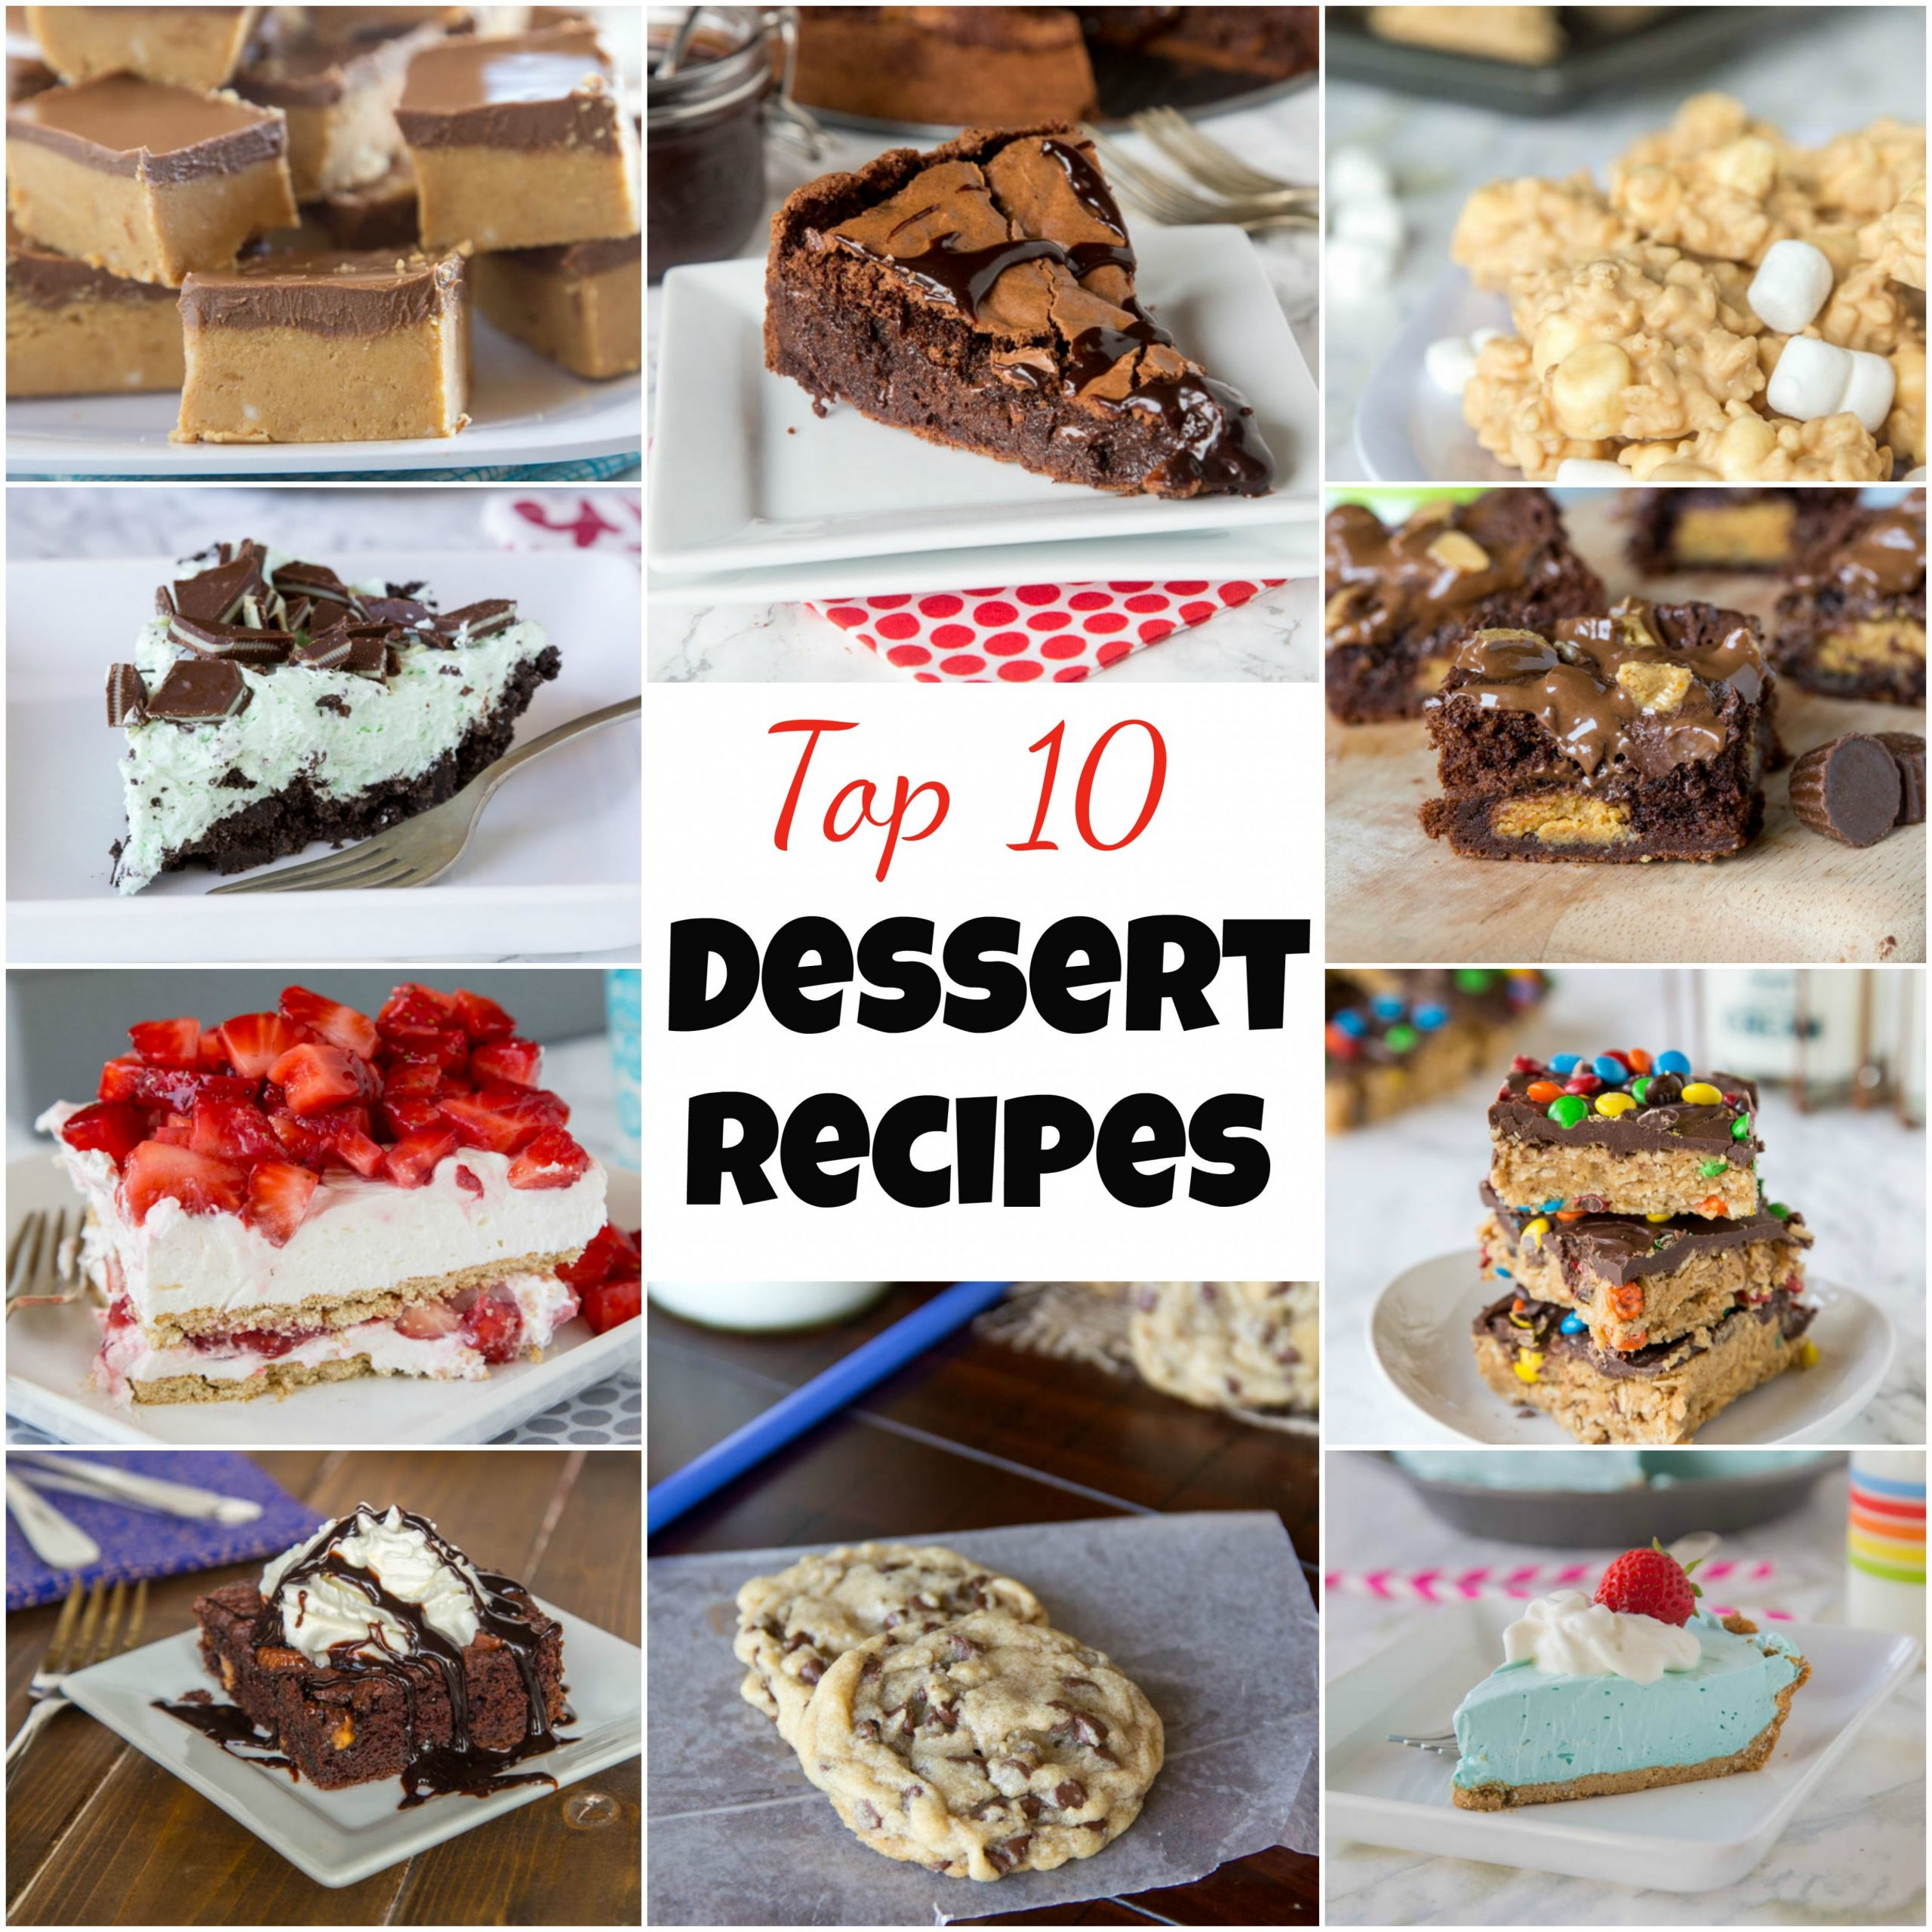 Top 10 Dessert Recipes - Dinners, Dishes, and Desserts - Recipes Dessert Top